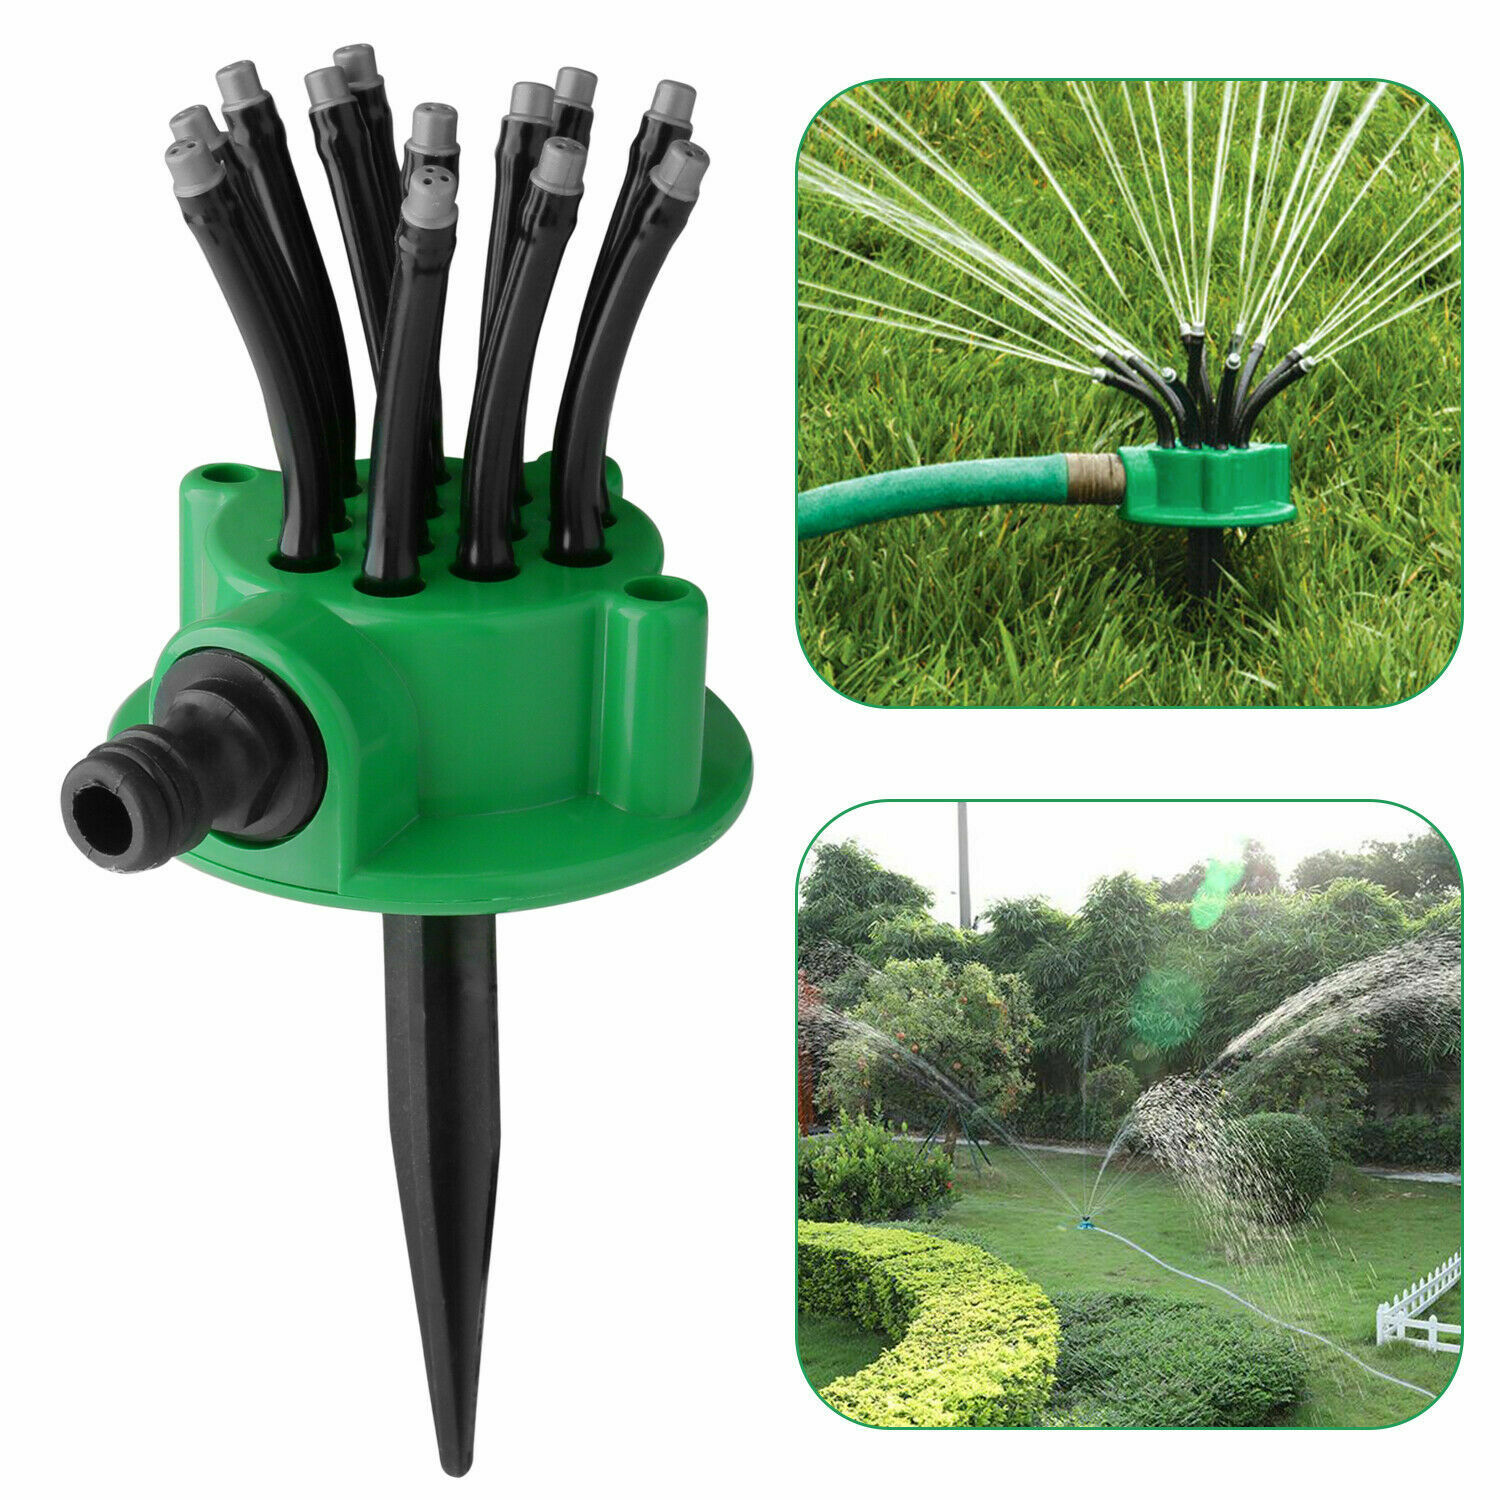 1//2 Inch DN15 Yard Garden Lawn Grass Irrigation 360° Circle Water Sprinkler Head